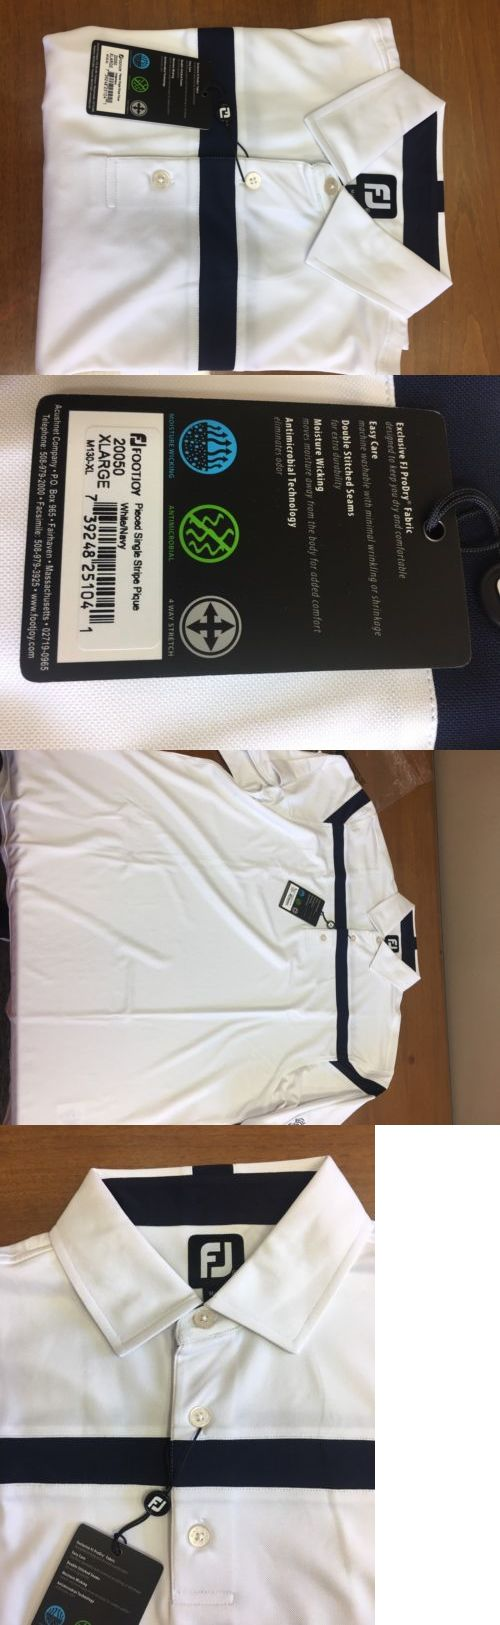 Other Golf Clothing 158939: Brand New Footjoy Golf Shirt Size Xl Color- White Navy -> BUY IT NOW ONLY: $74.99 on eBay!